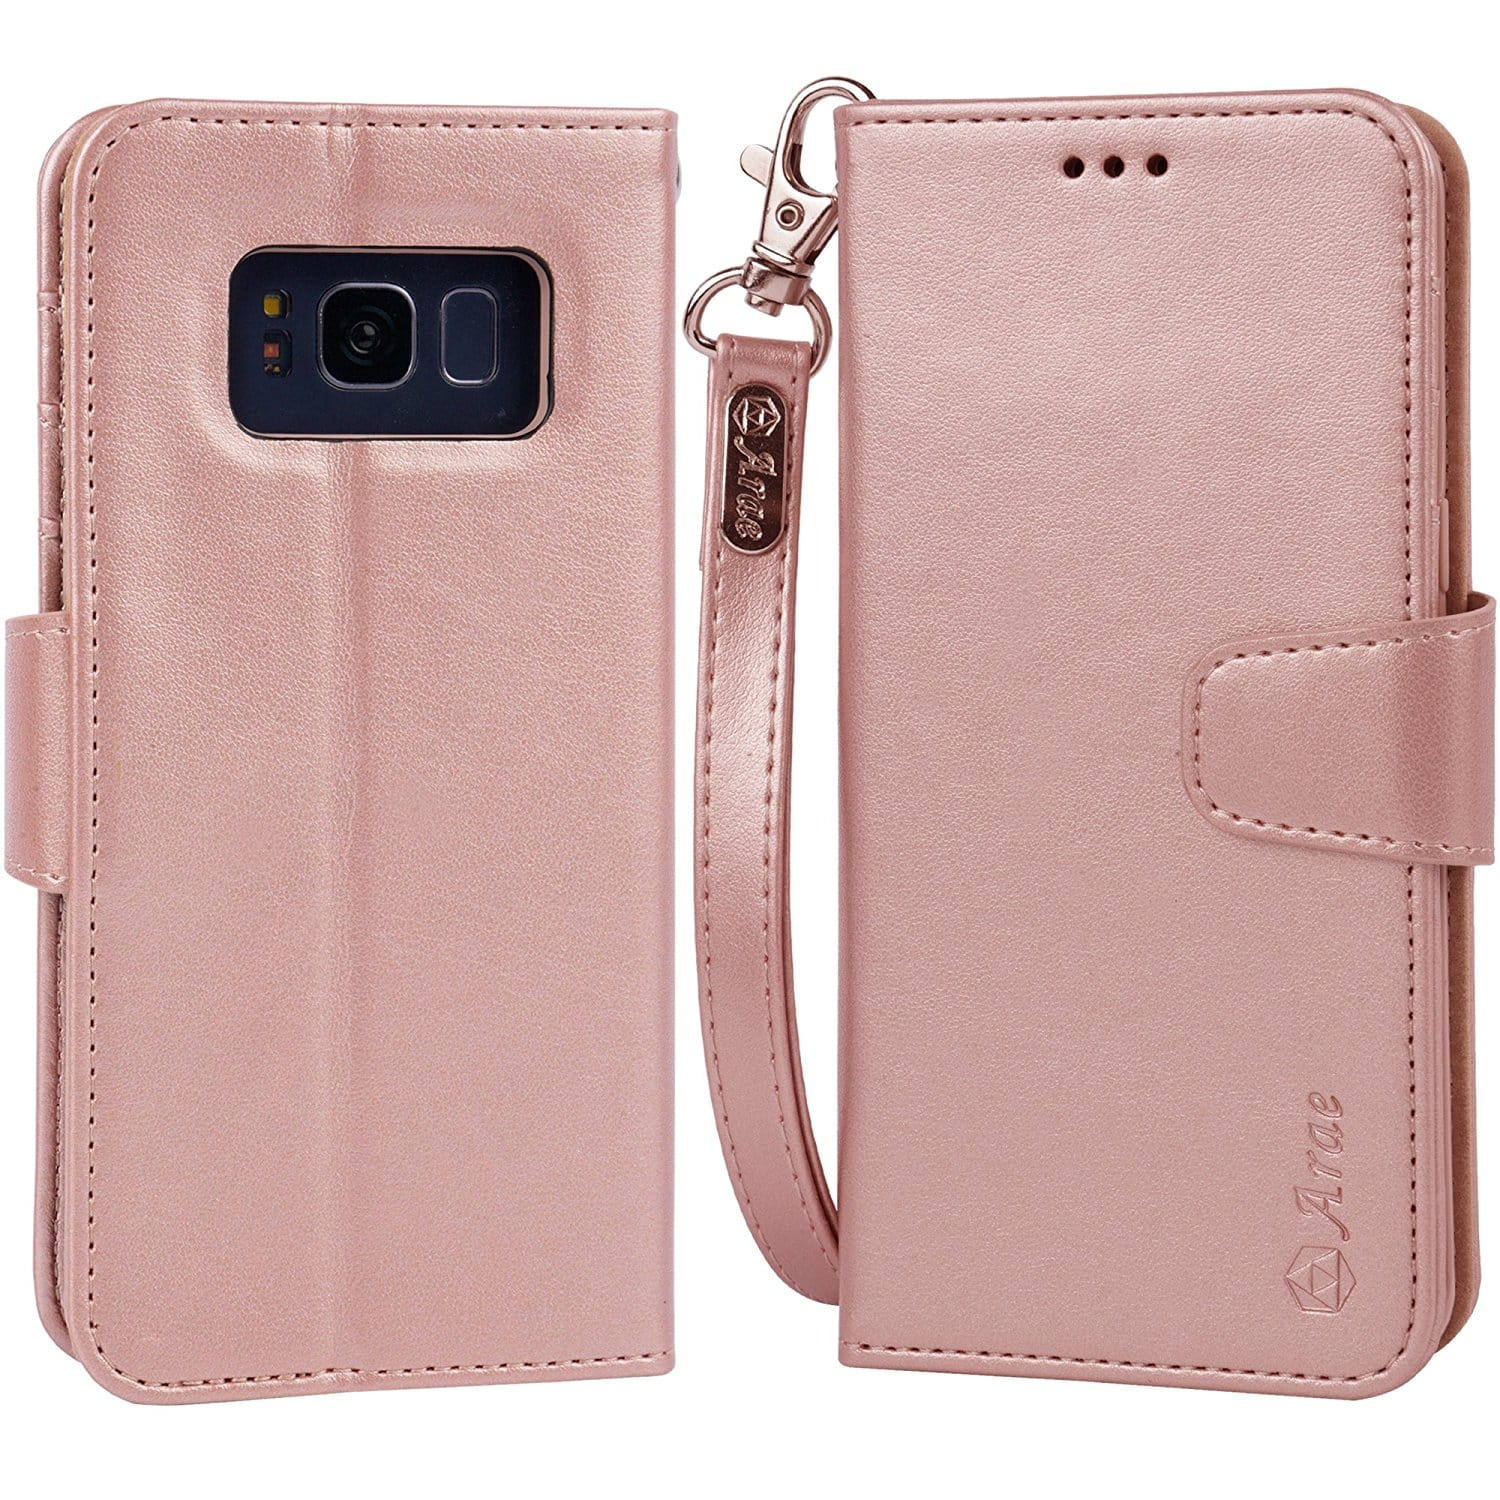 best loved 11072 d7a41 ForOffice | samsung galaxy s8 wallet case amazon